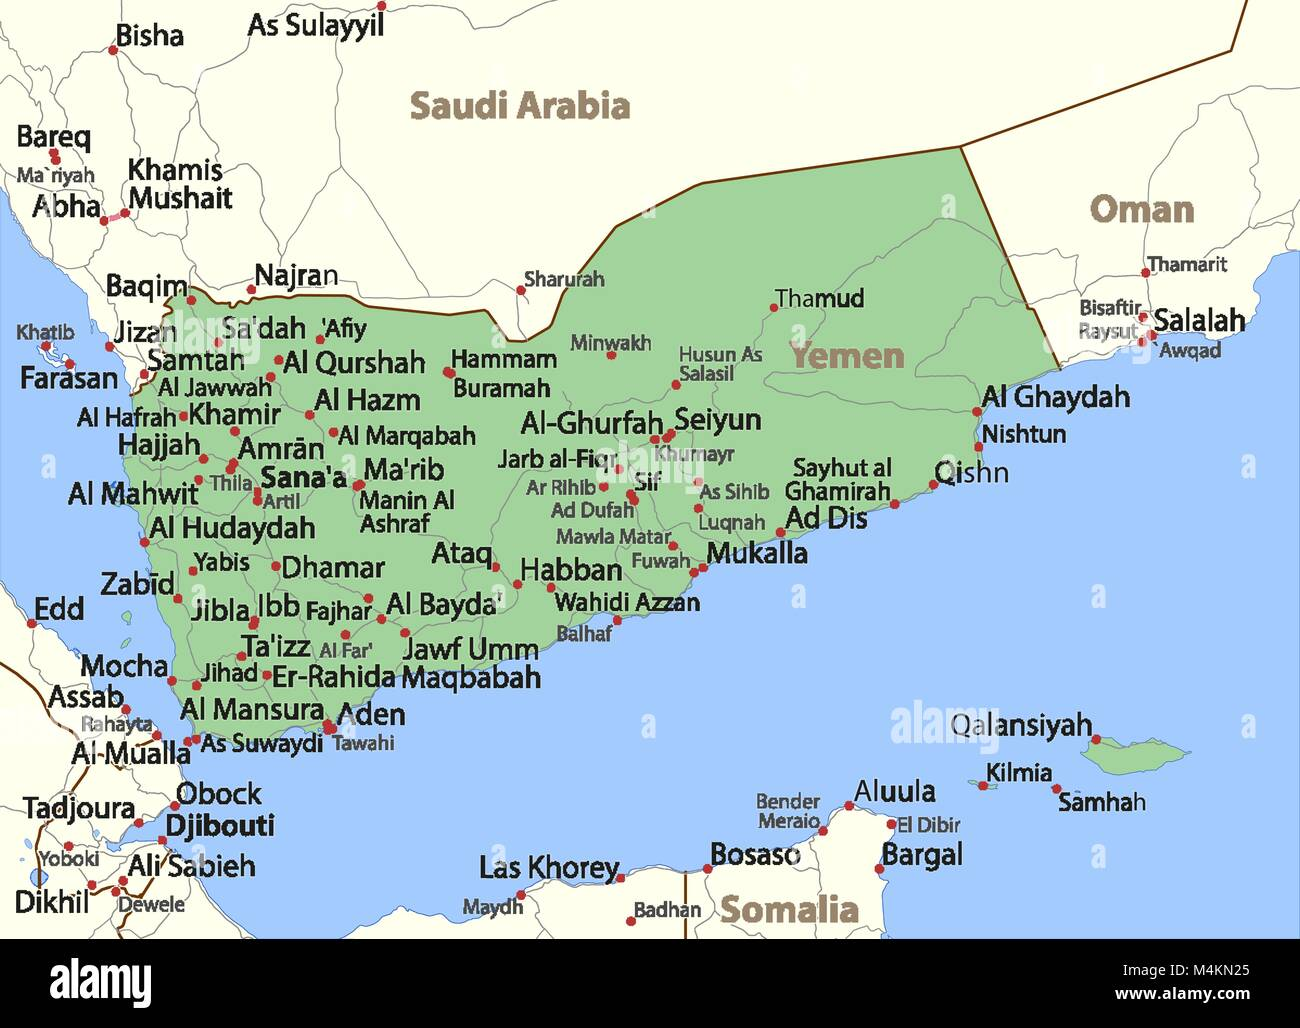 Map of Yemen. Shows country borders,  place names and roads. Labels in English where possible. Projection: Mercator. - Stock Vector